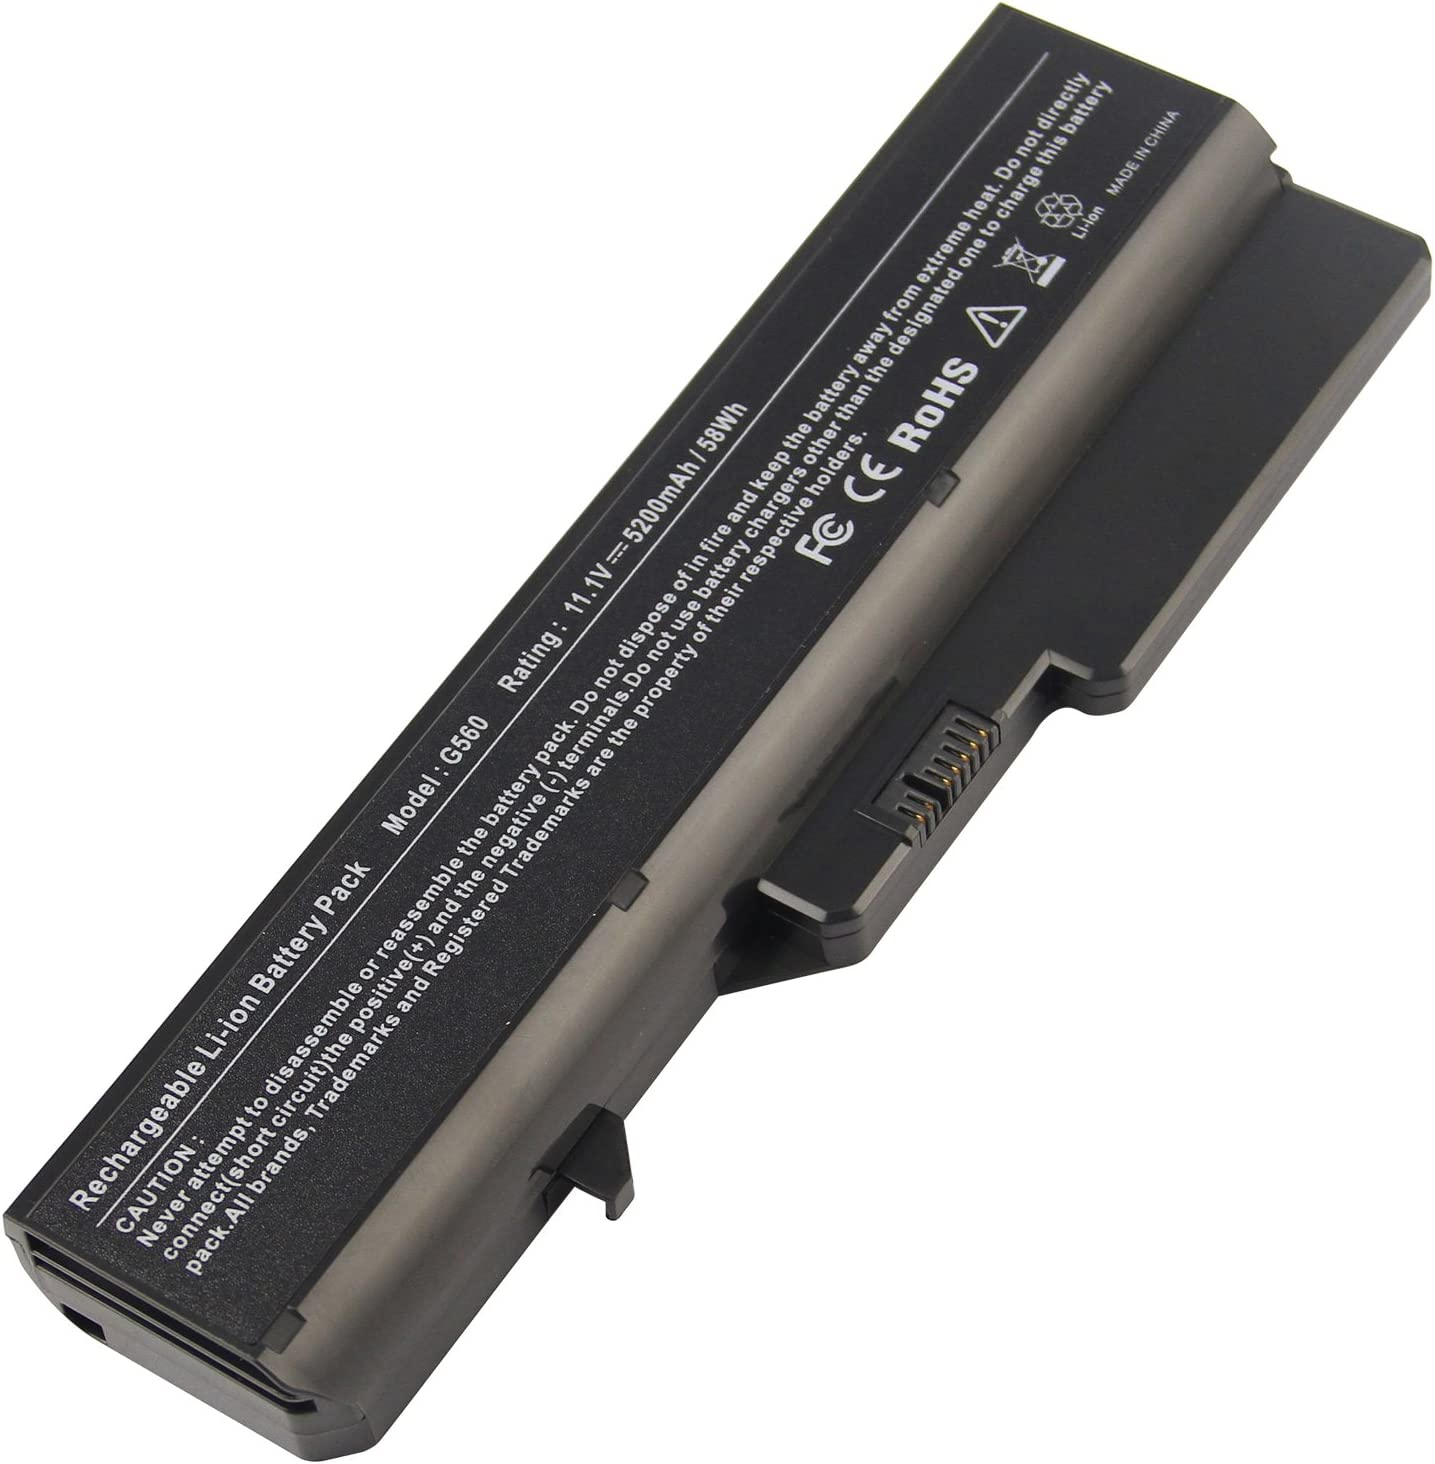 AC Doctor INC Laptop Battery for Lenovo IdeaPad B470 B570 G460 G465 G470 G475 G560 G565 G570 G575 V360 V370 V470 V570 Z370 Z460 Z465 Z470 Z475 Z560 Z565 Z570 Z575, 5200mAh/11.1V/6-Cell